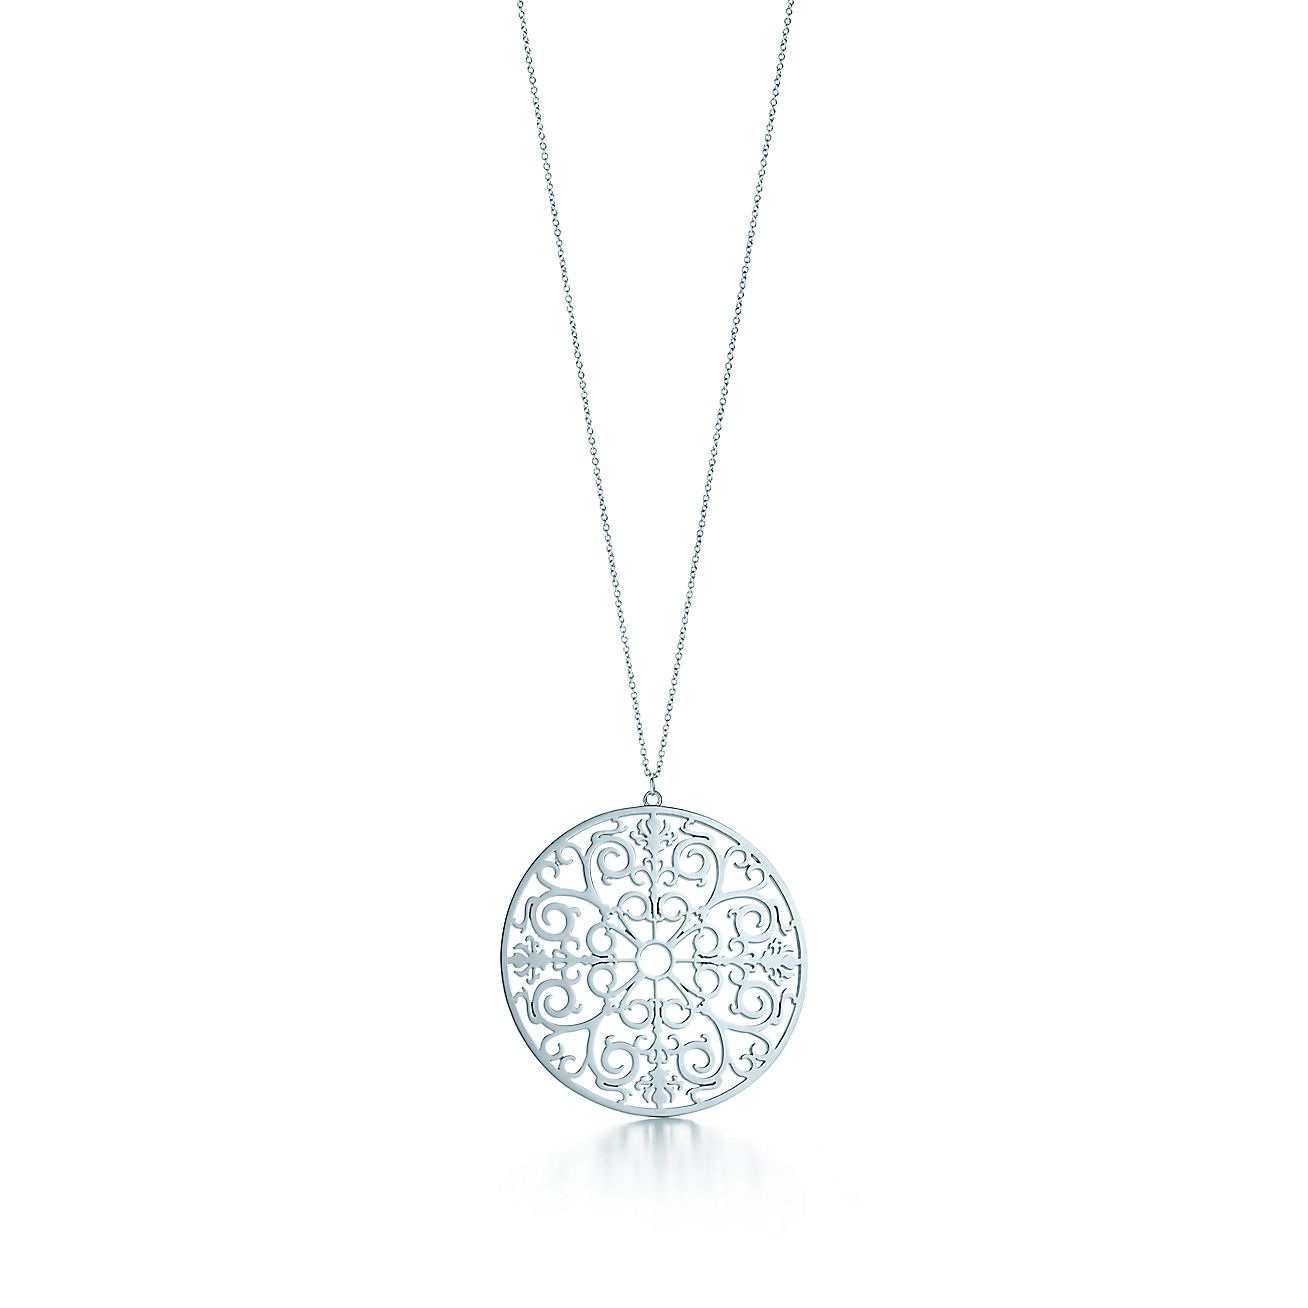 Tiffany enchant round pendant in sterling silver medium tiffany enchant round pendant in sterling silver medium tiffany co mozeypictures Images